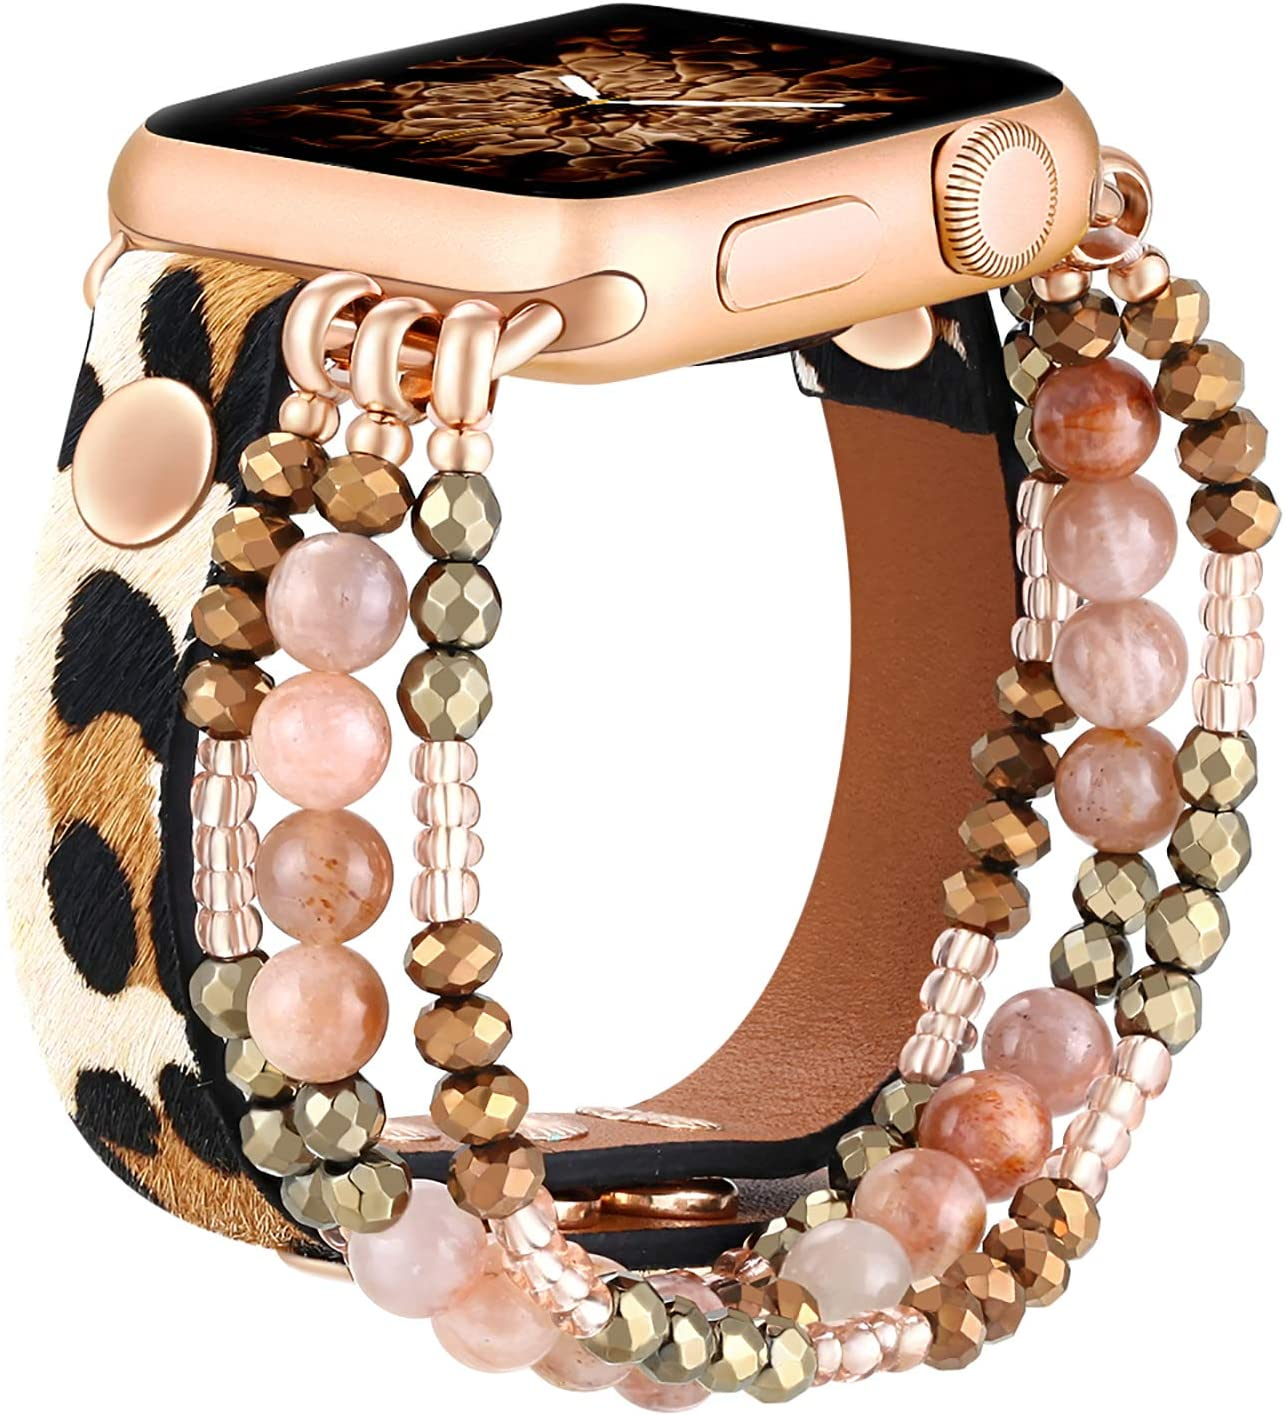 fastgo Leather Leopard Band Compatible with Apple Watch 38mm 40mm Women Girls, Furry Leopard Elastic Cheetah Printed Beaded Bracelet Strap for Iwatch Series SE & 6 5 4 3 2 1 (Cheetah, 38mm/40mm)